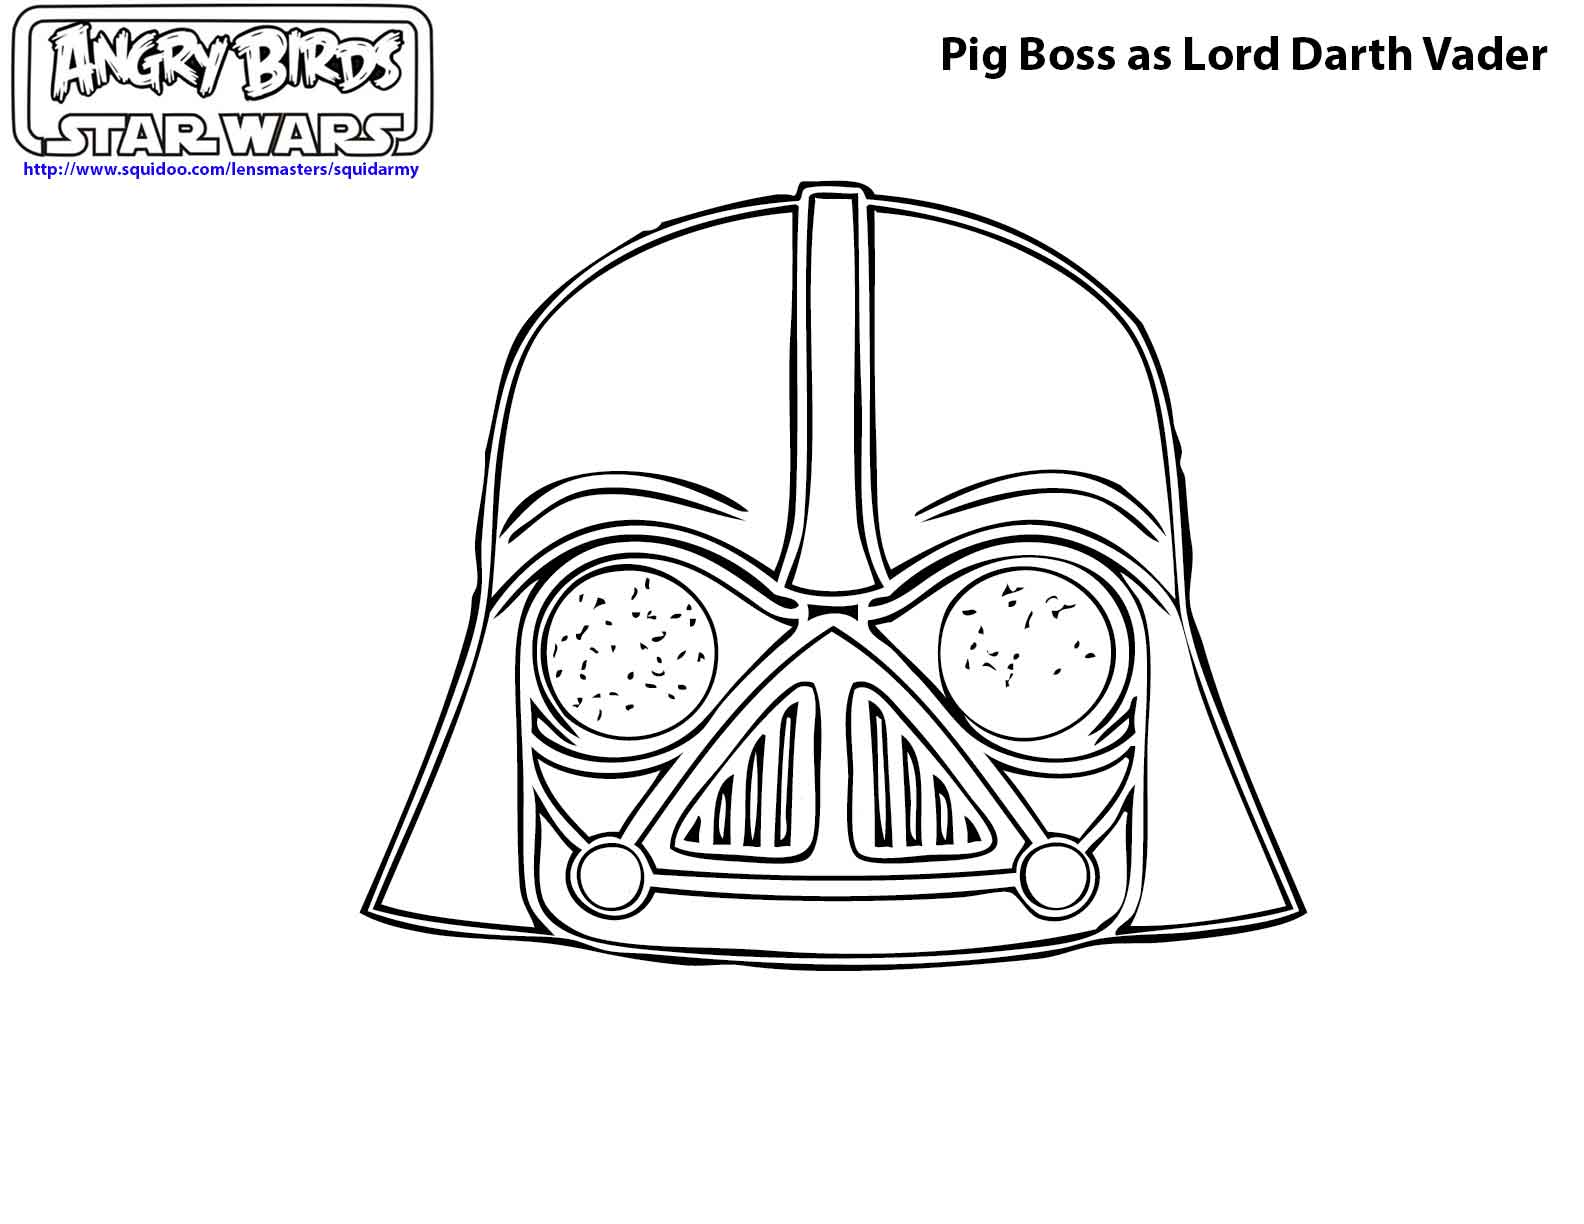 Star Wars Coloring Pages TV & Films ColoringPedia - star wars coloring pages printable